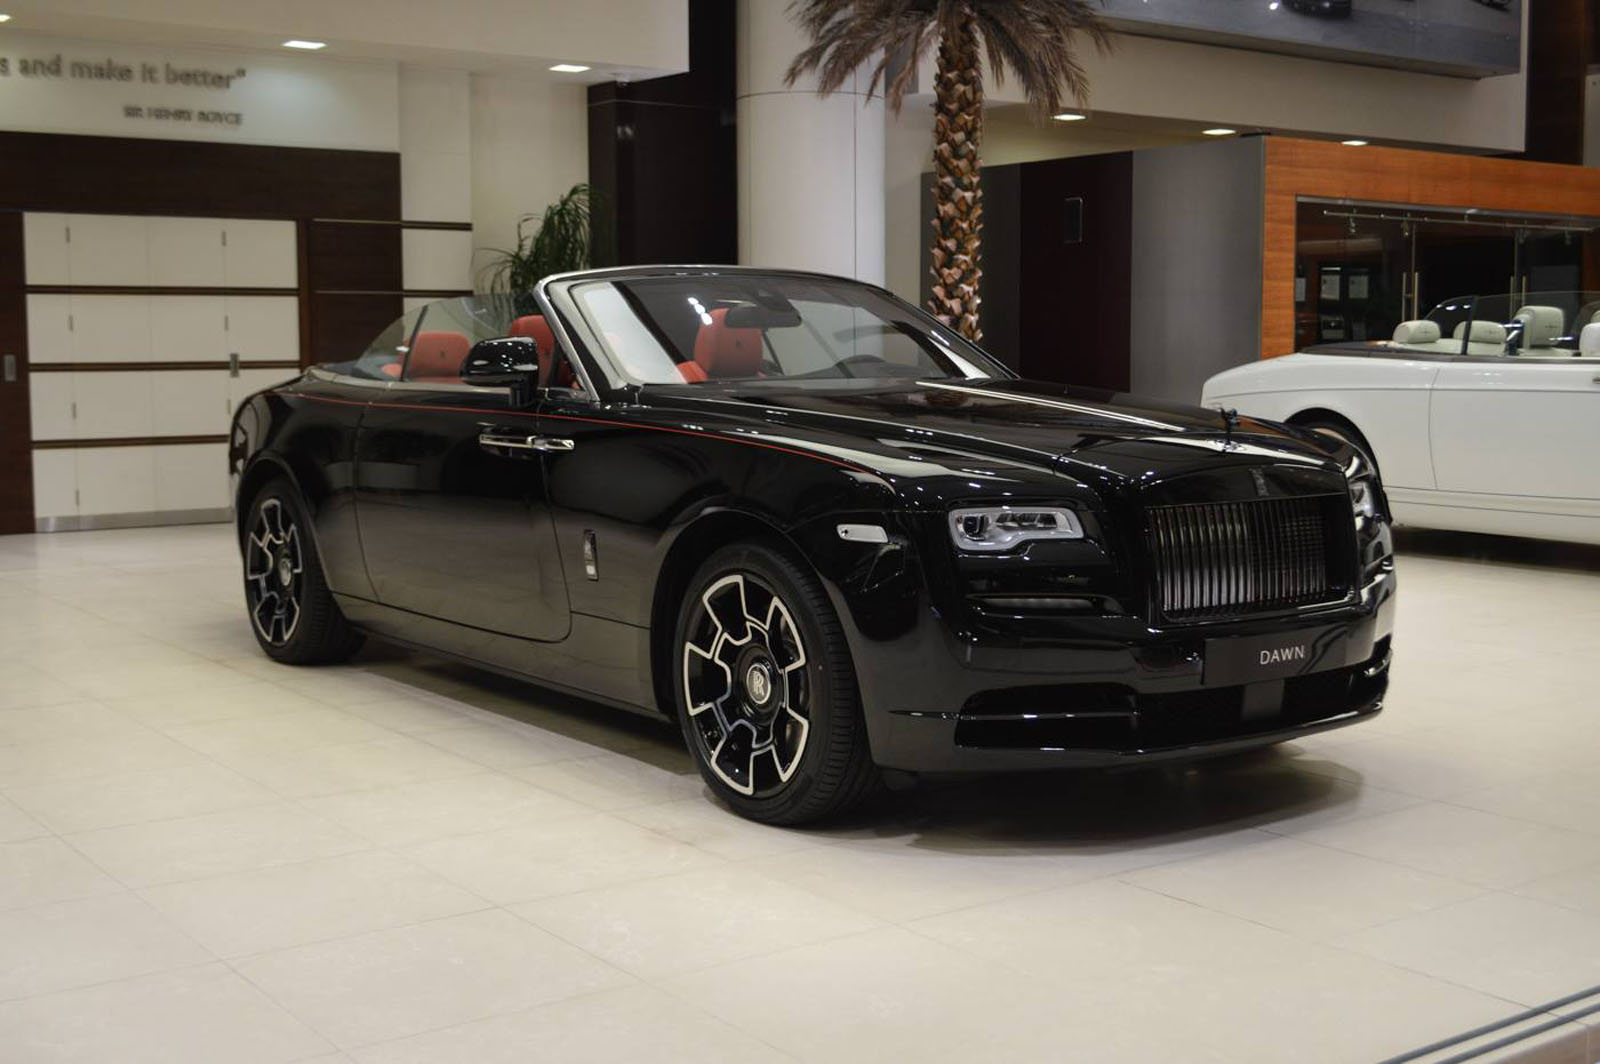 This Rolls Royce Dawn Black Badge Is The Young Enthusiasts Rolls